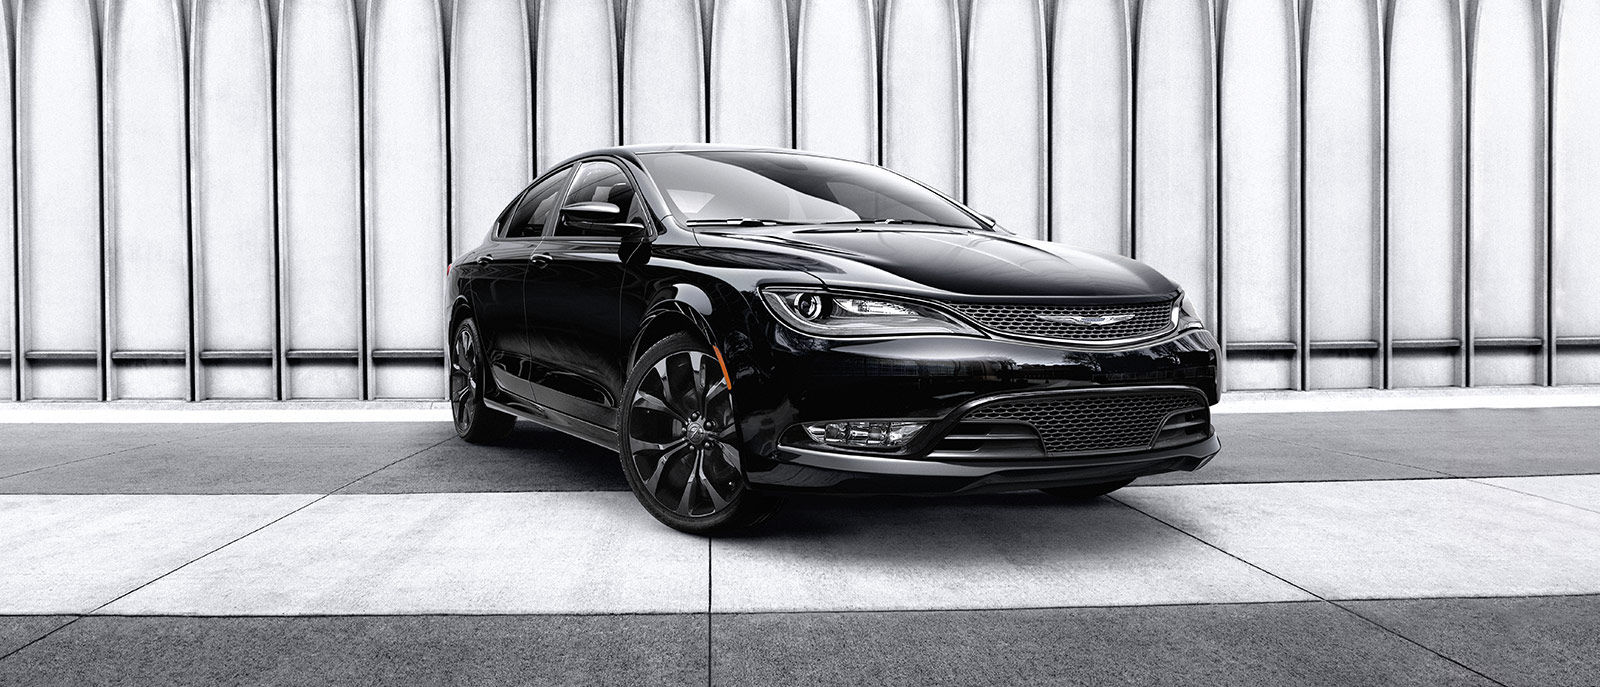 Chrysler 200 in raleigh